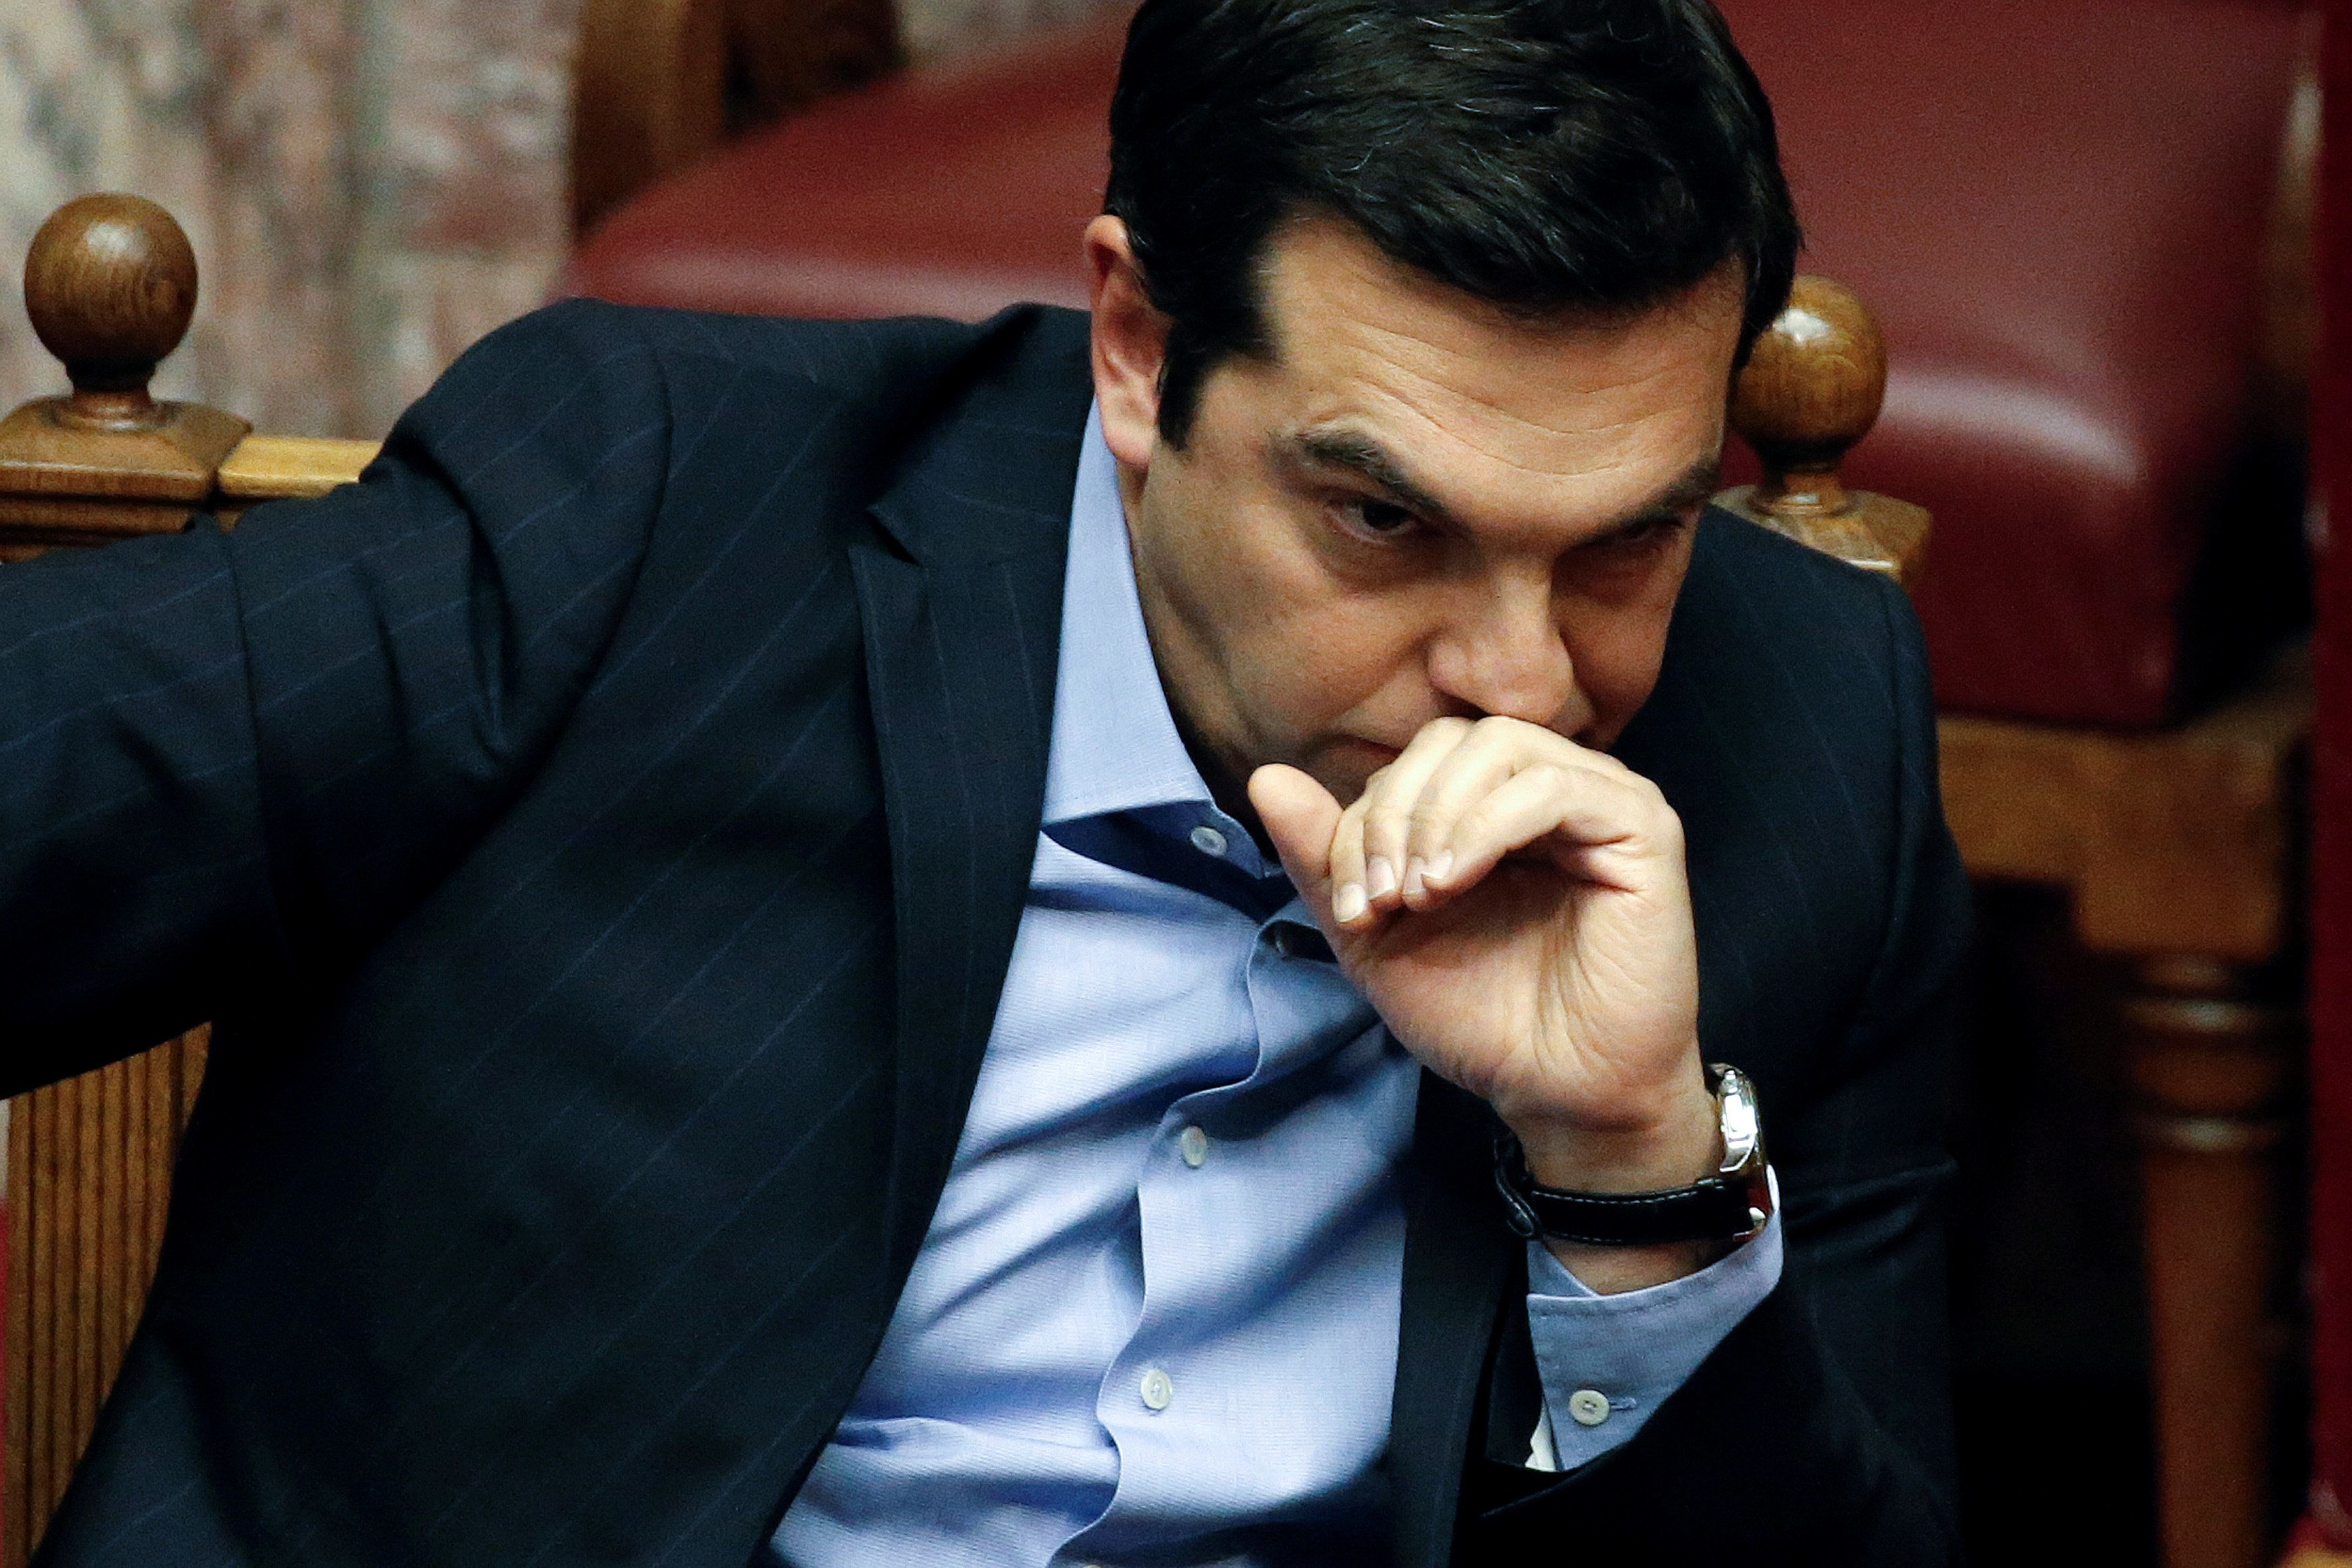 Prime Minister Alexis Tsipras' government was re-elected in September on promises to ease the pain of austerity for the